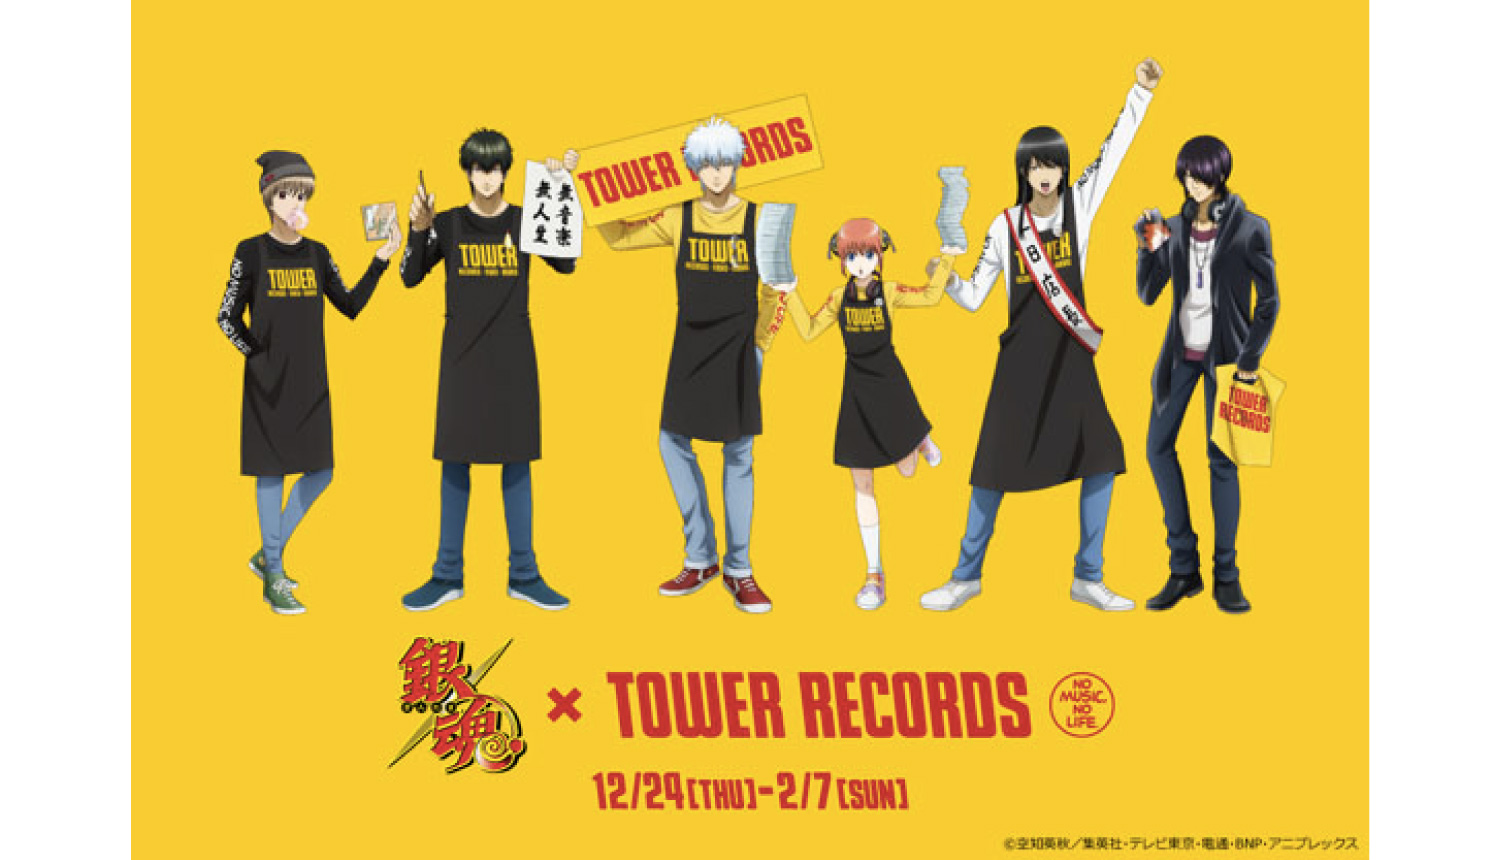 「銀魂-×-TOWER-RECORDS」コラボカフェ-Gintama-TOWER-RECORDS-Collaboration-Café-銀魂主題咖啡廳–43